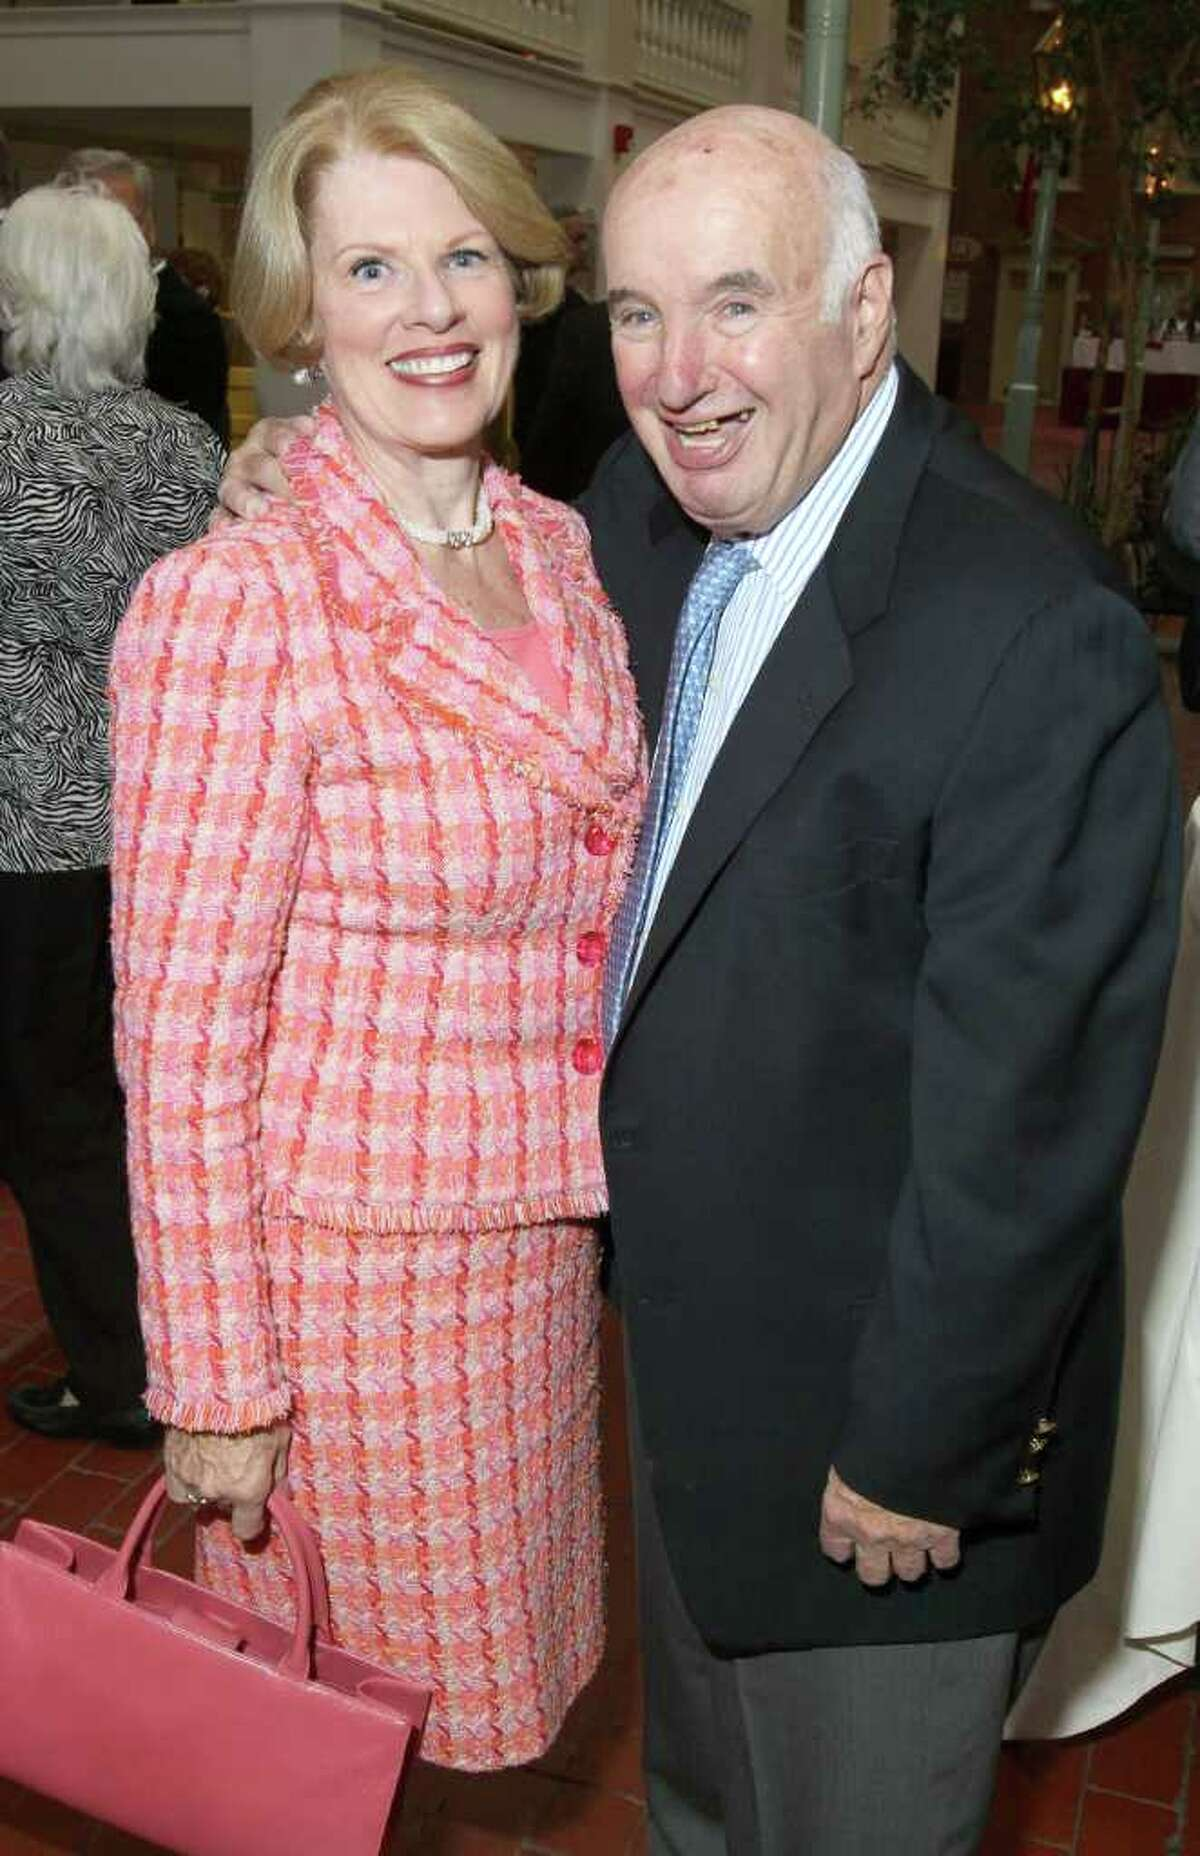 Maureen and Ed Lewi attend the John McLoughlin Roast to benefit The John McLoughlin Fund, part of the Endowment at the Center for Disability Services, on May 17, 2011, in Albany, N.Y. (Photo by Joe Putrock / Special to the Times Union)